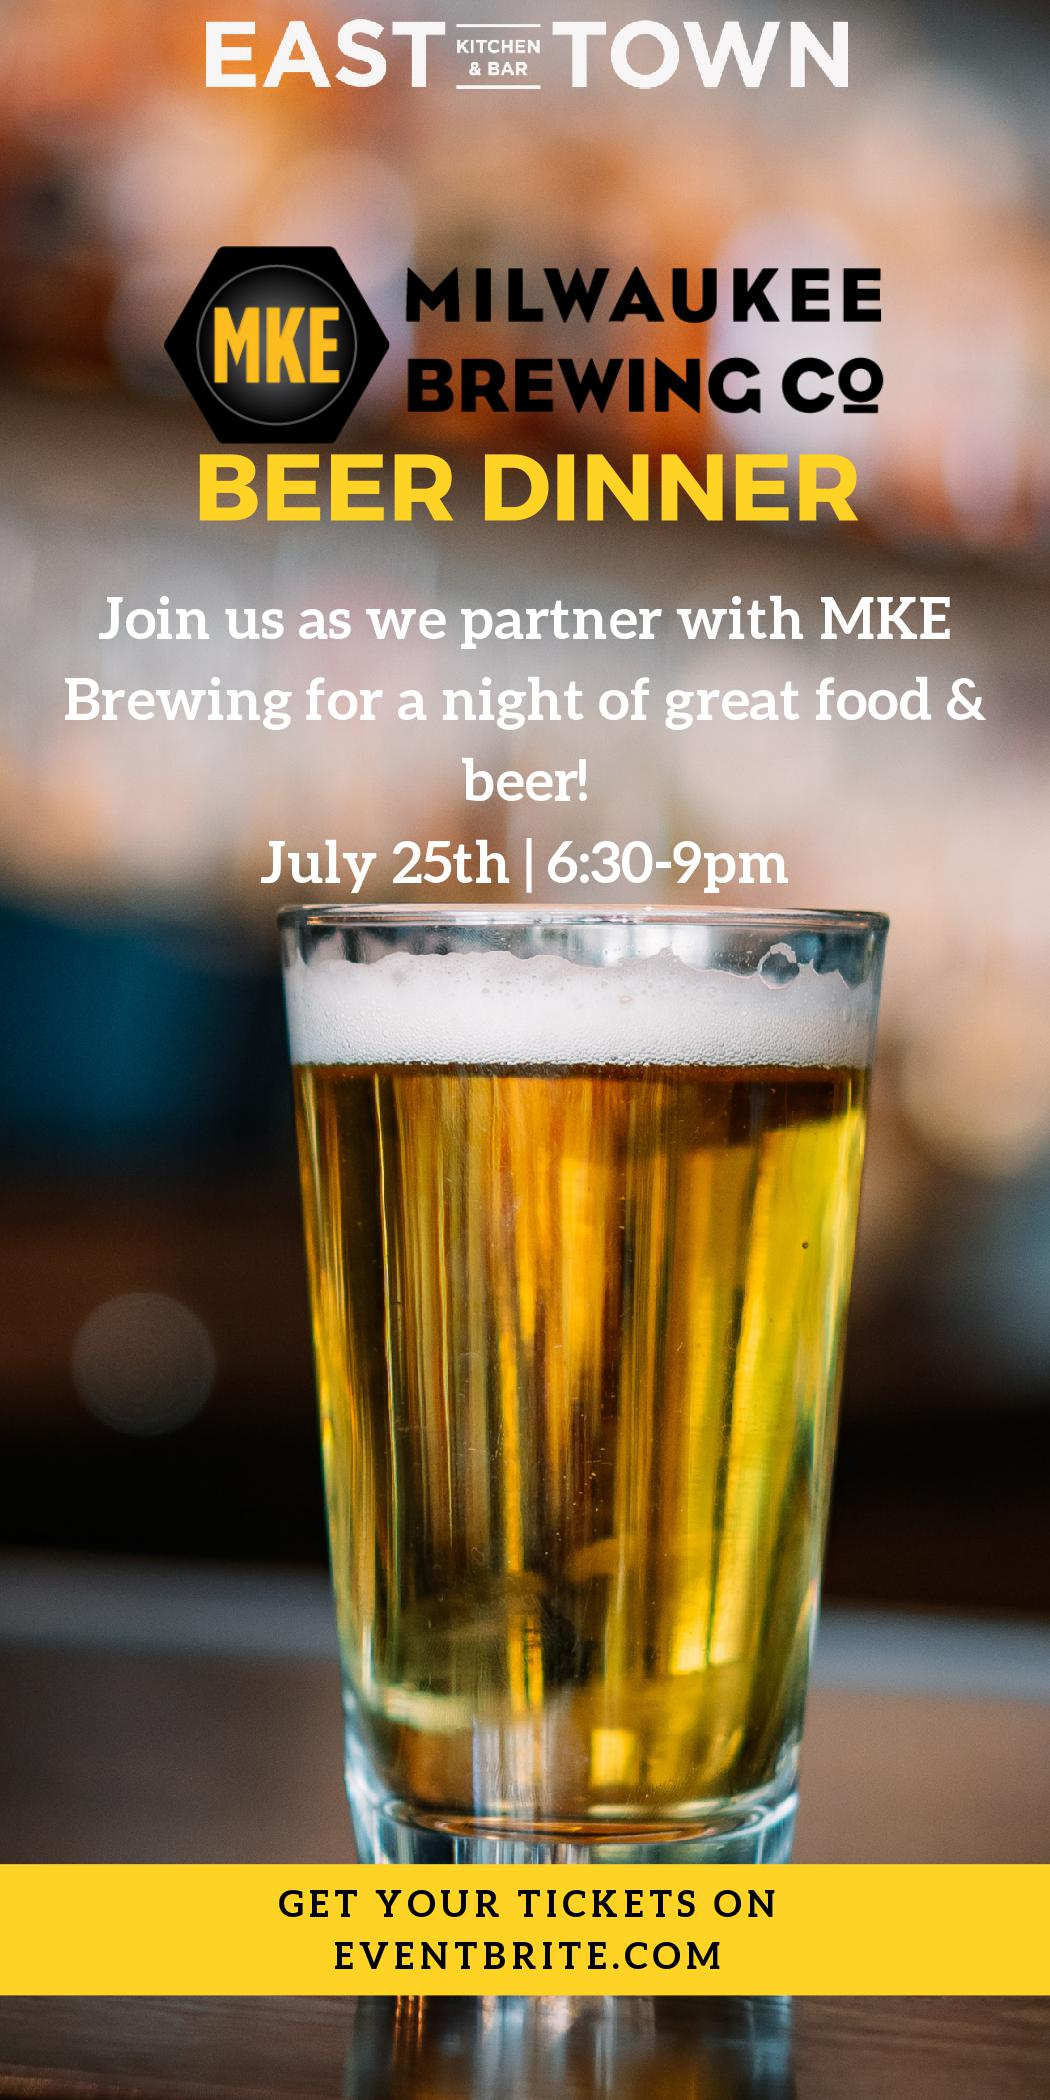 MKE Beer Dinner paired with East Town Kitchen & Bar food